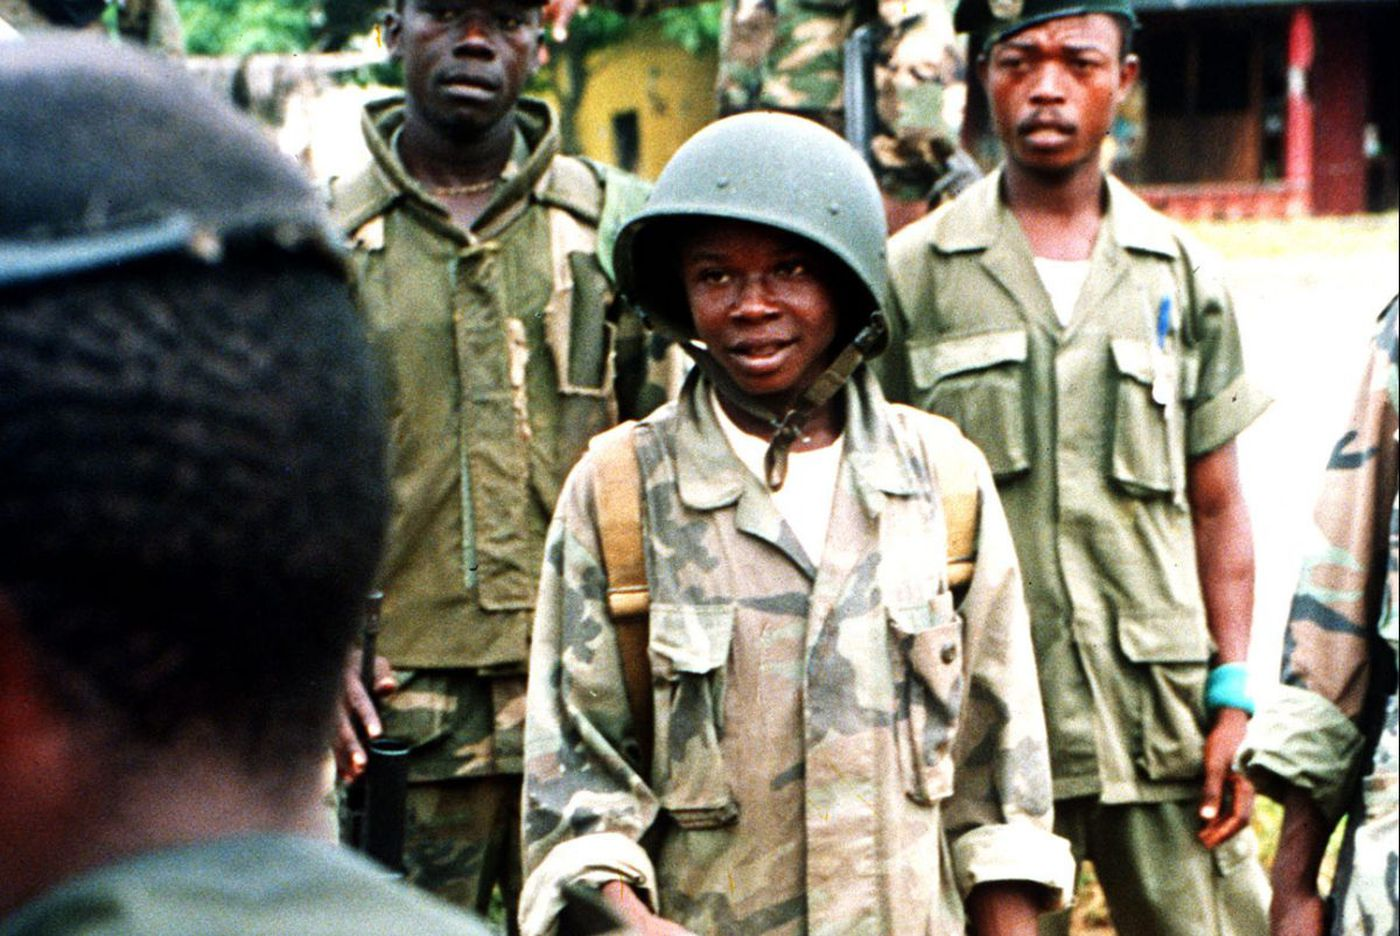 Jury in Philly selected to weigh alleged Liberian war criminal's case